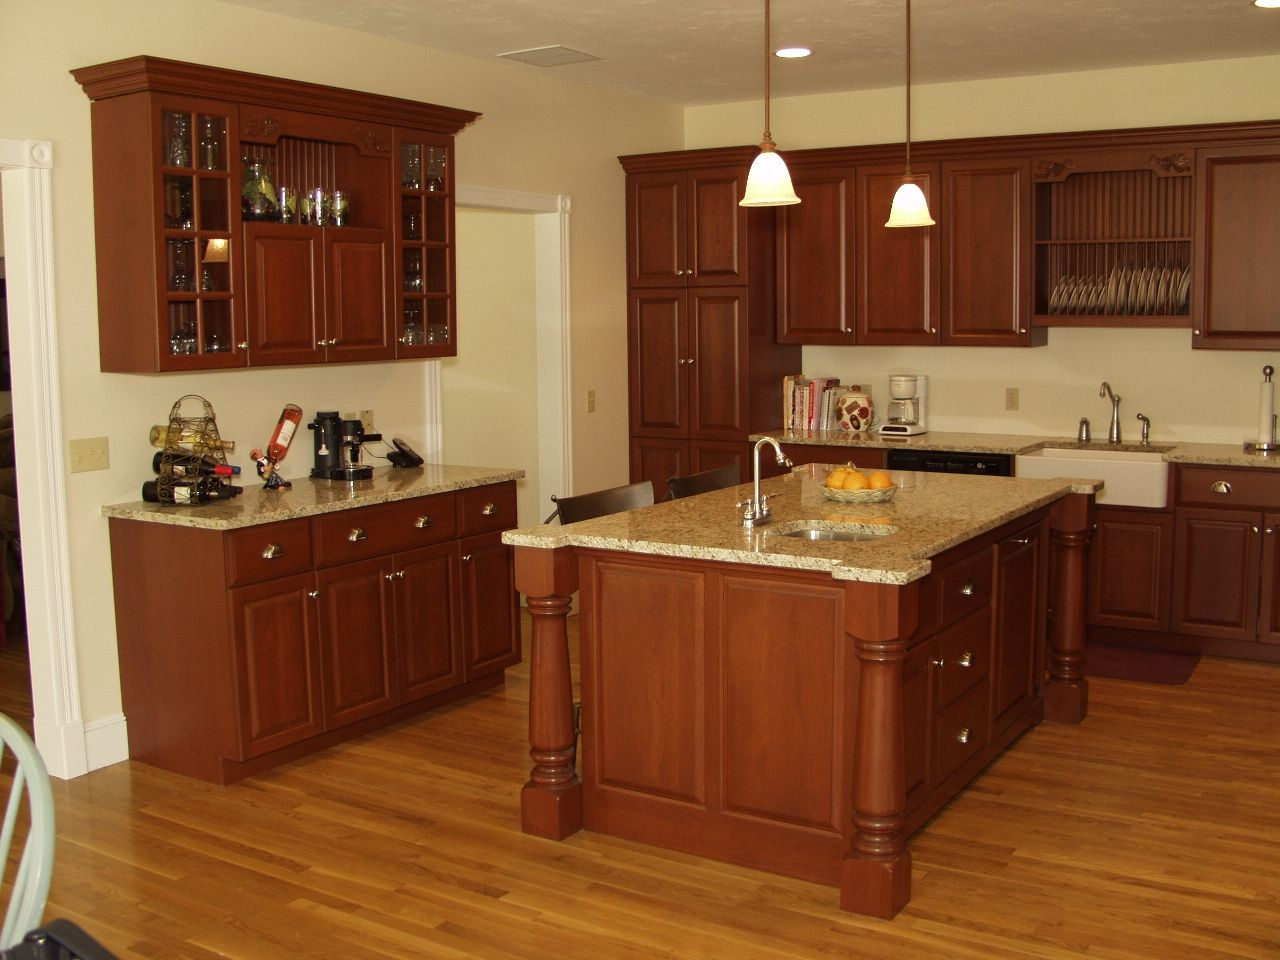 Kitchen quartz countertops with oak cabinets cabinets with for Kitchen cabinets and countertops ideas